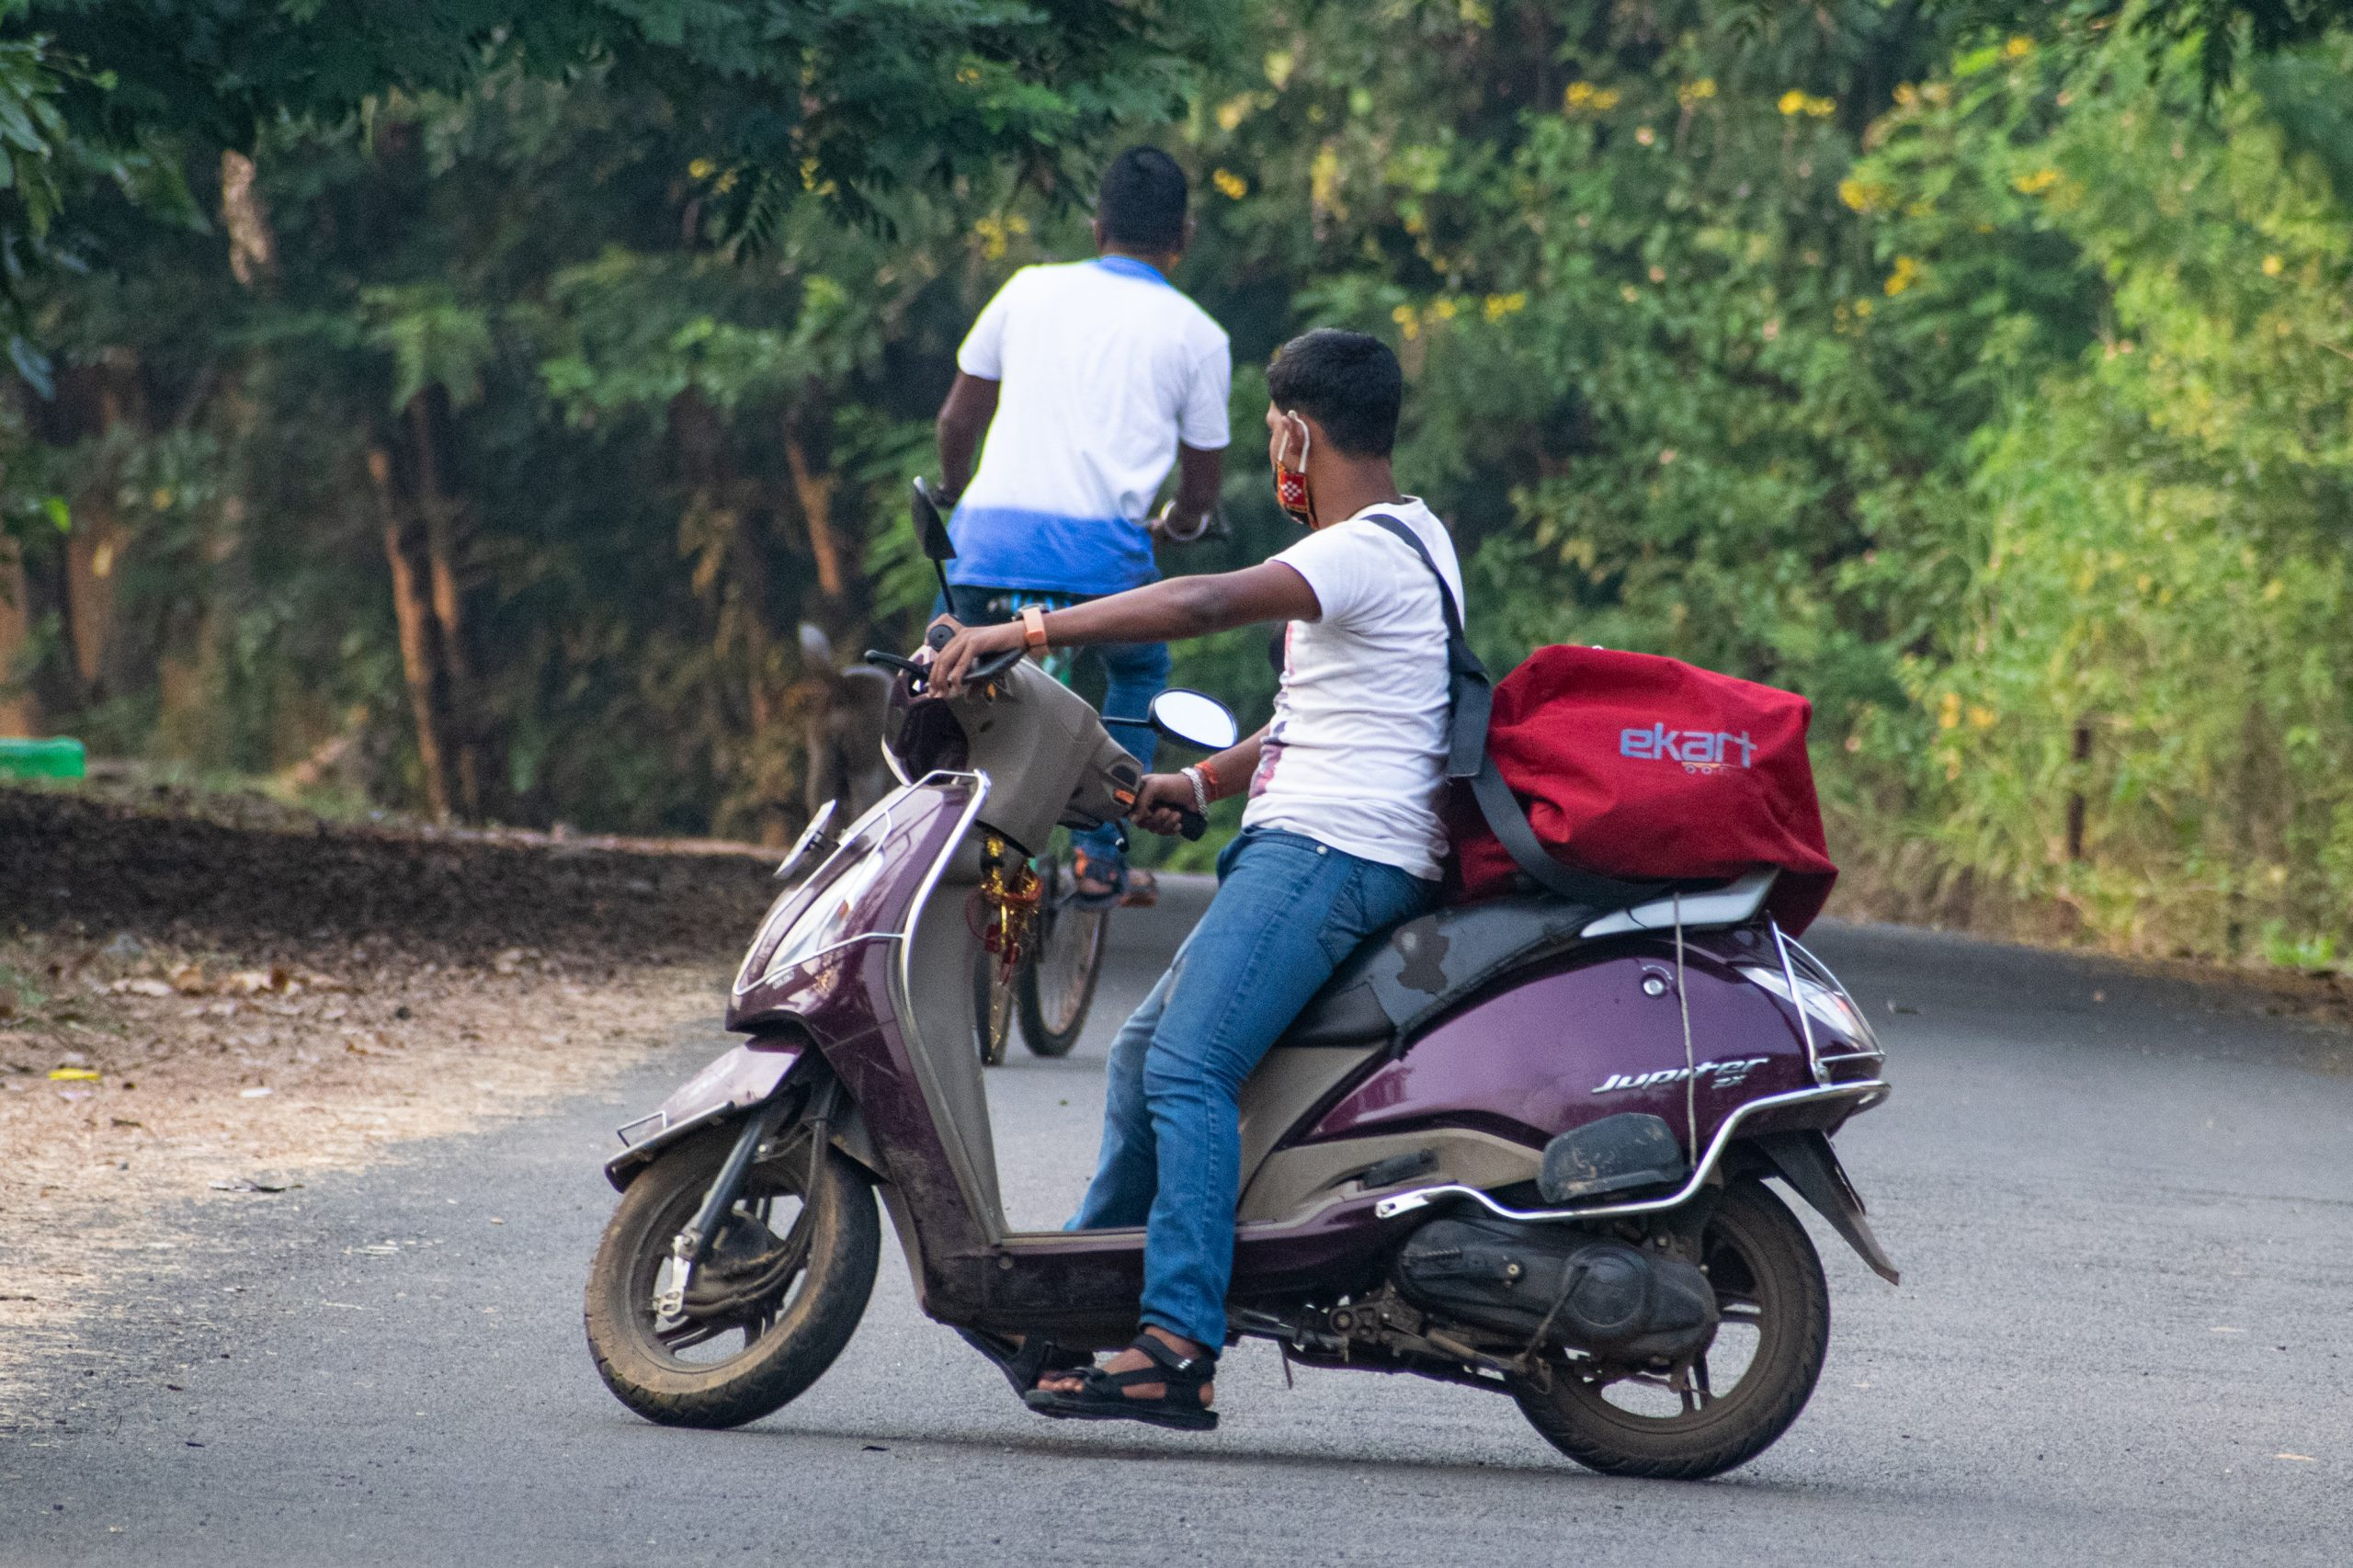 A delivery boy on a scooter